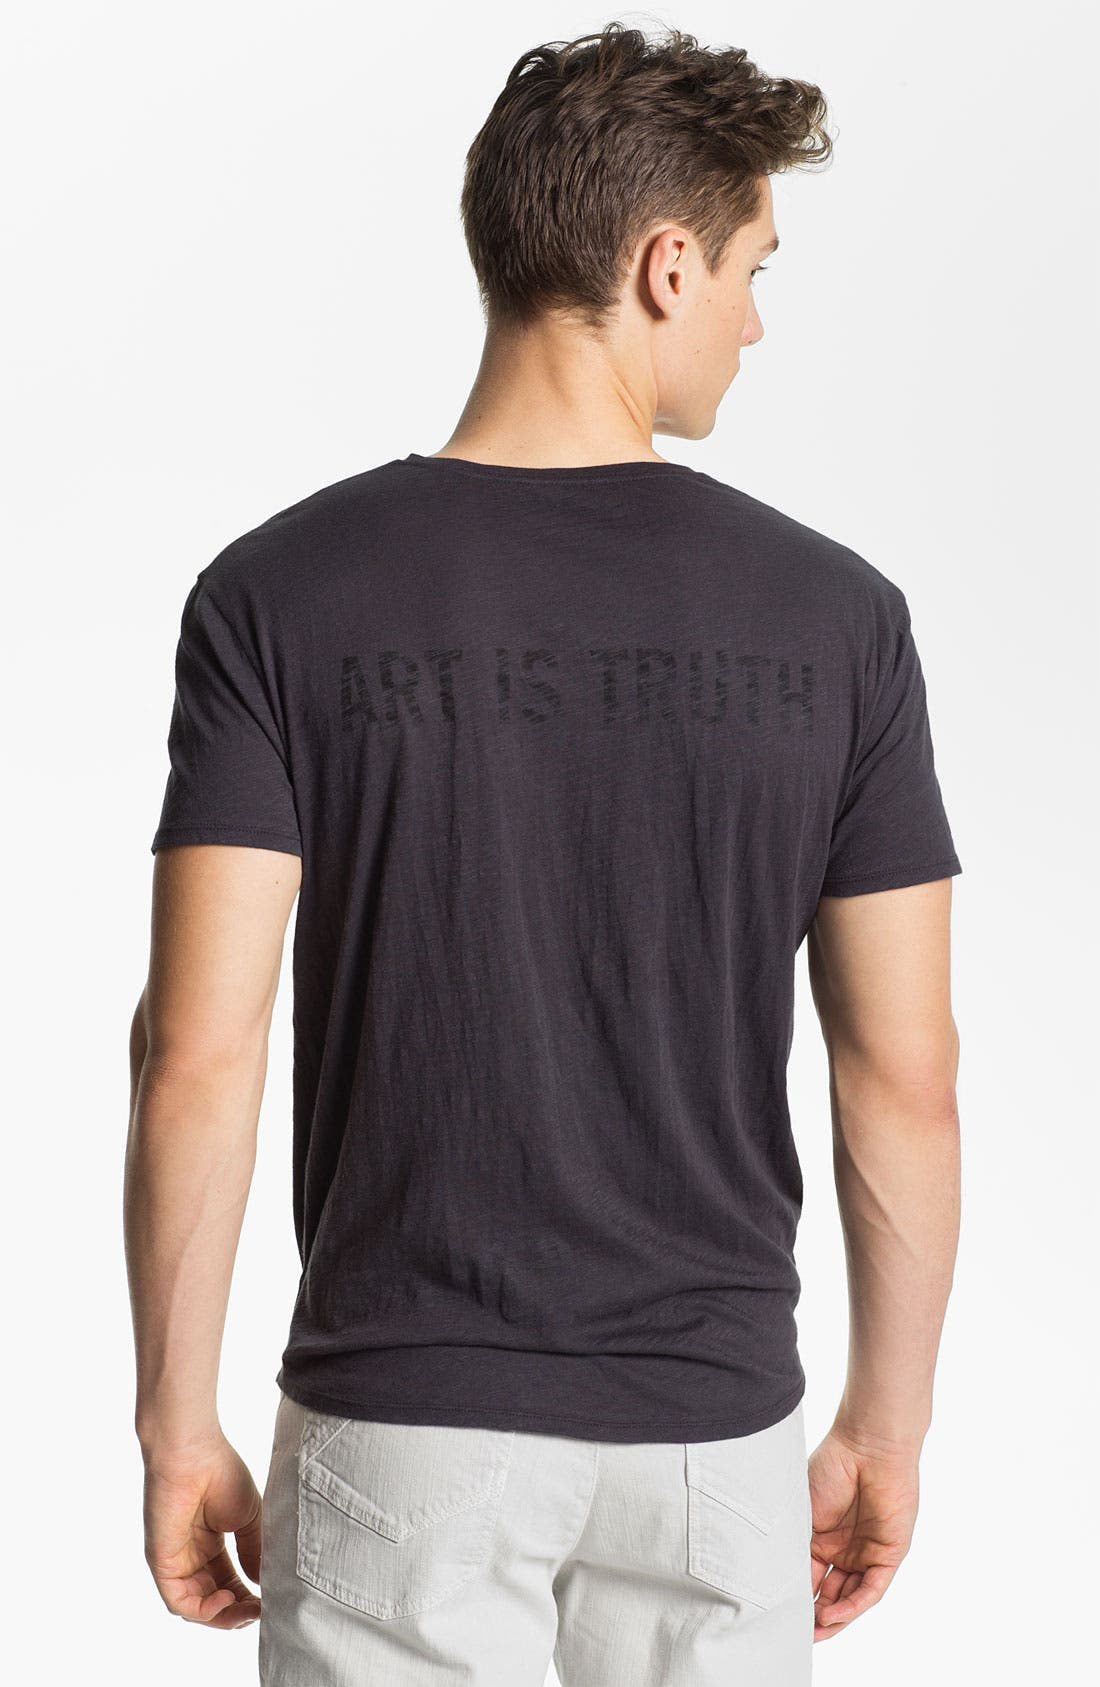 ZADIG & VOLTAIRE,                             'Art Is Truth' Graphic V-Neck T-Shirt,                             Alternate thumbnail 2, color,                             025